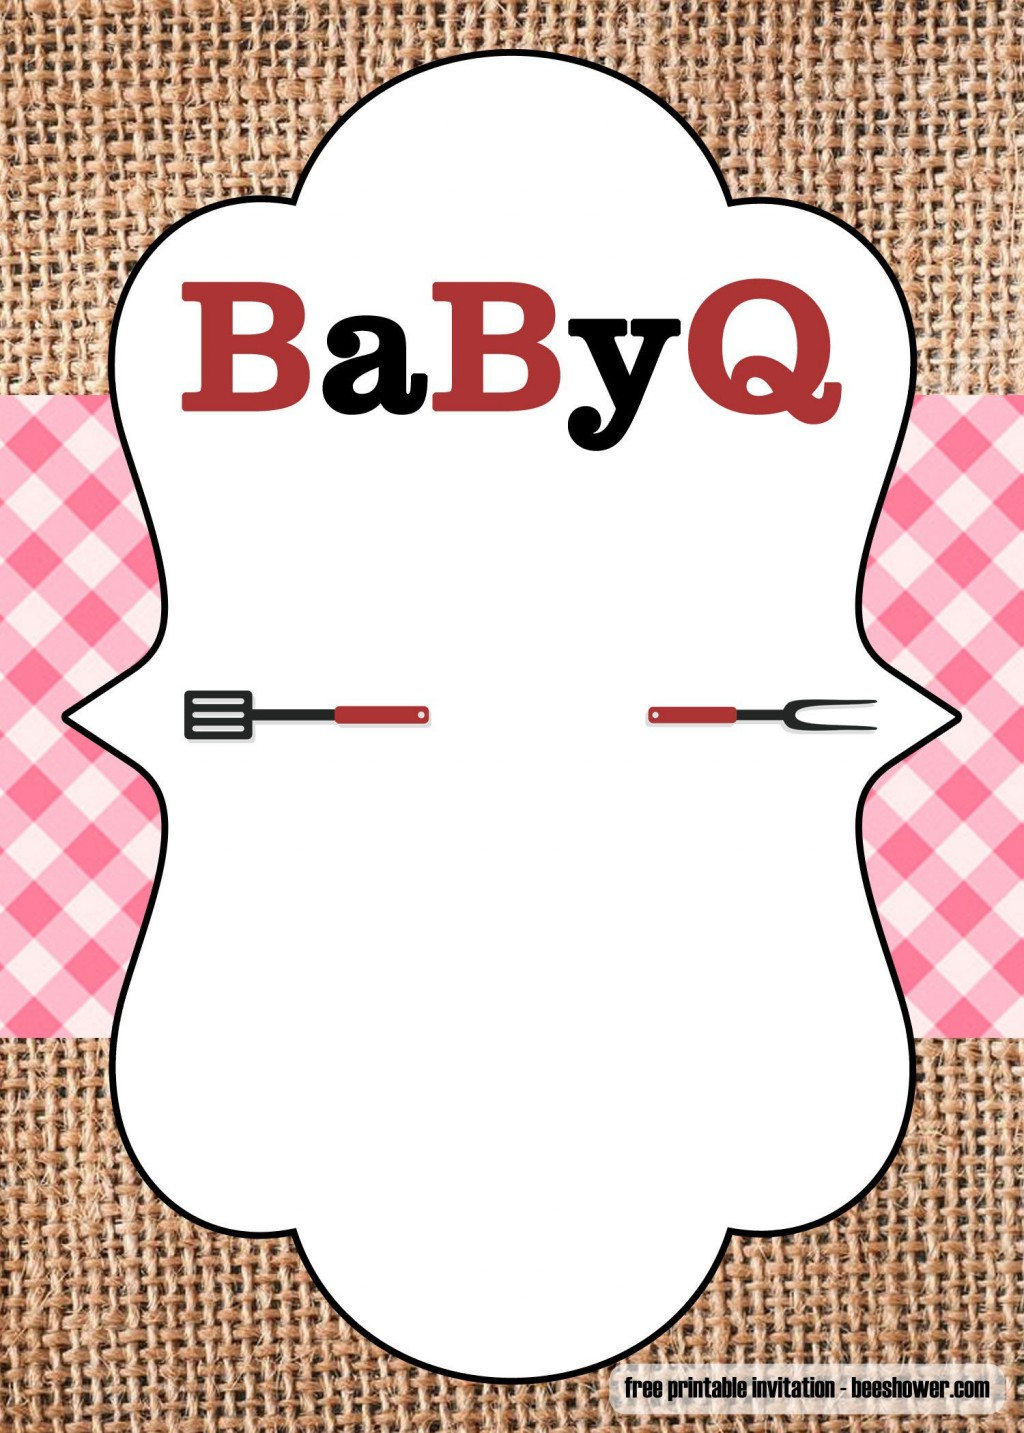 005 Awesome Baby Shower Template Free Printable Picture  Superhero Invitation For A Boy DiaperLarge